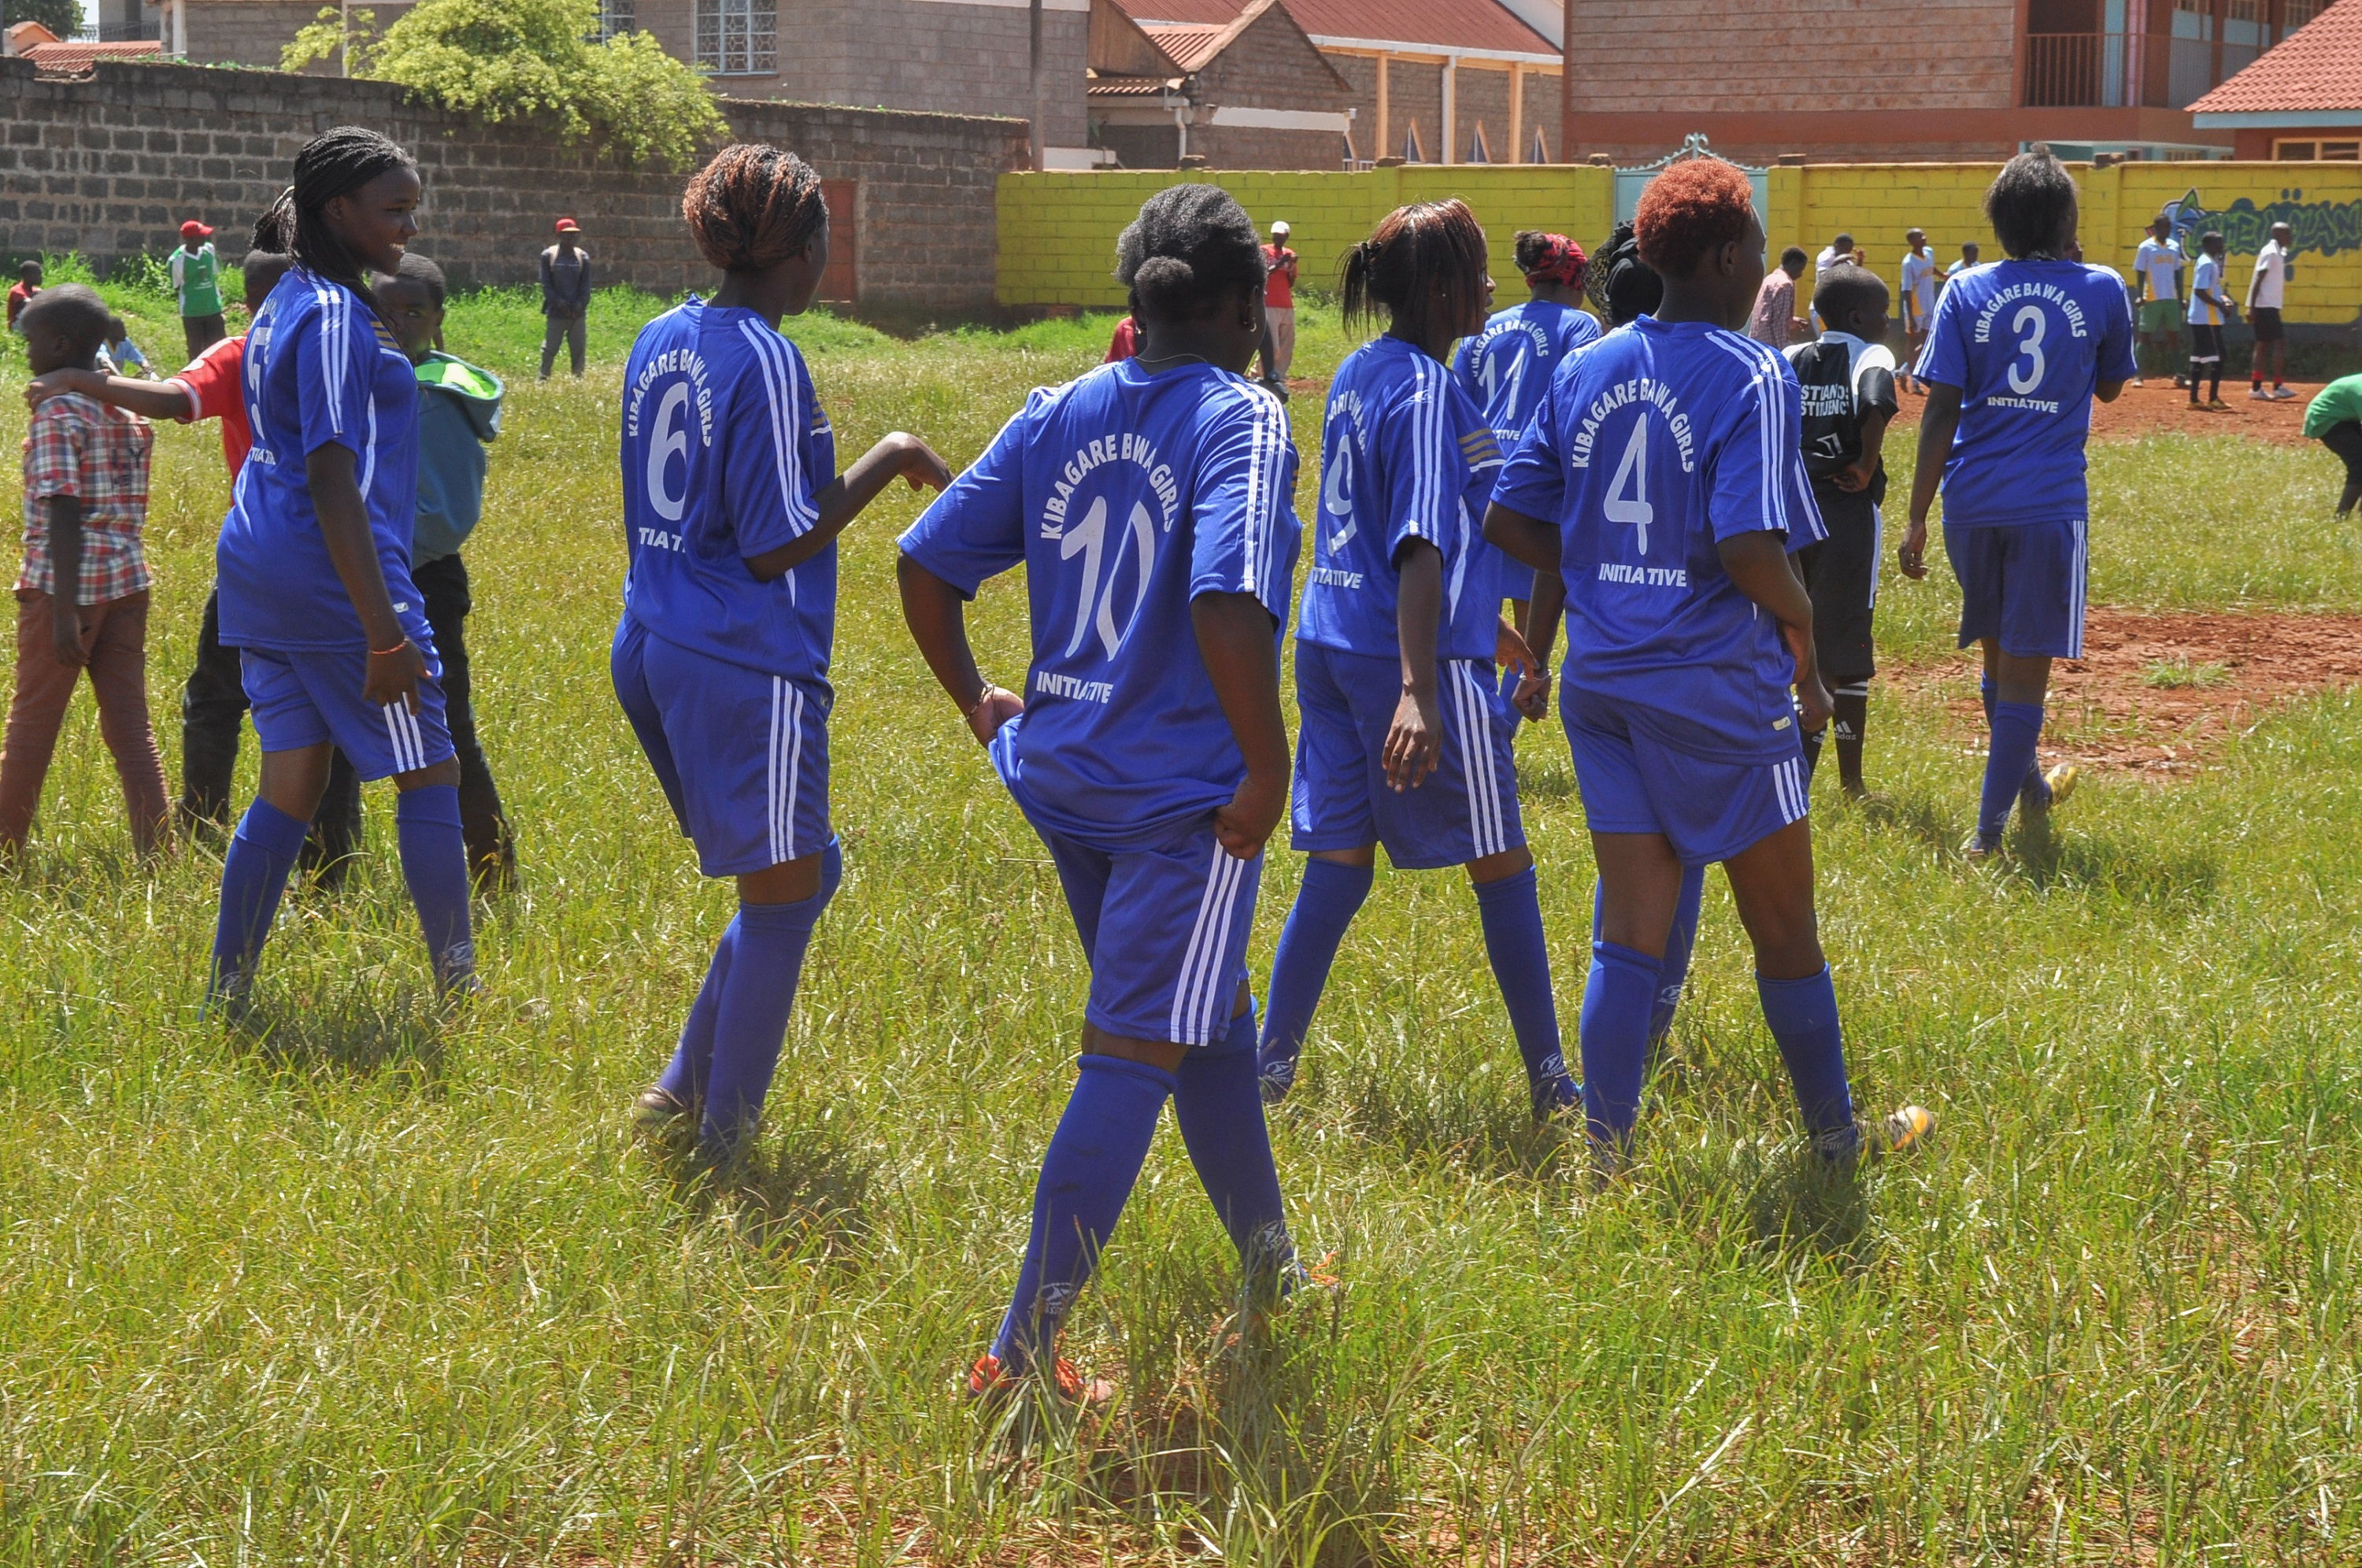 The Kibagare BAWA Girls Initiative (KBGI) experience